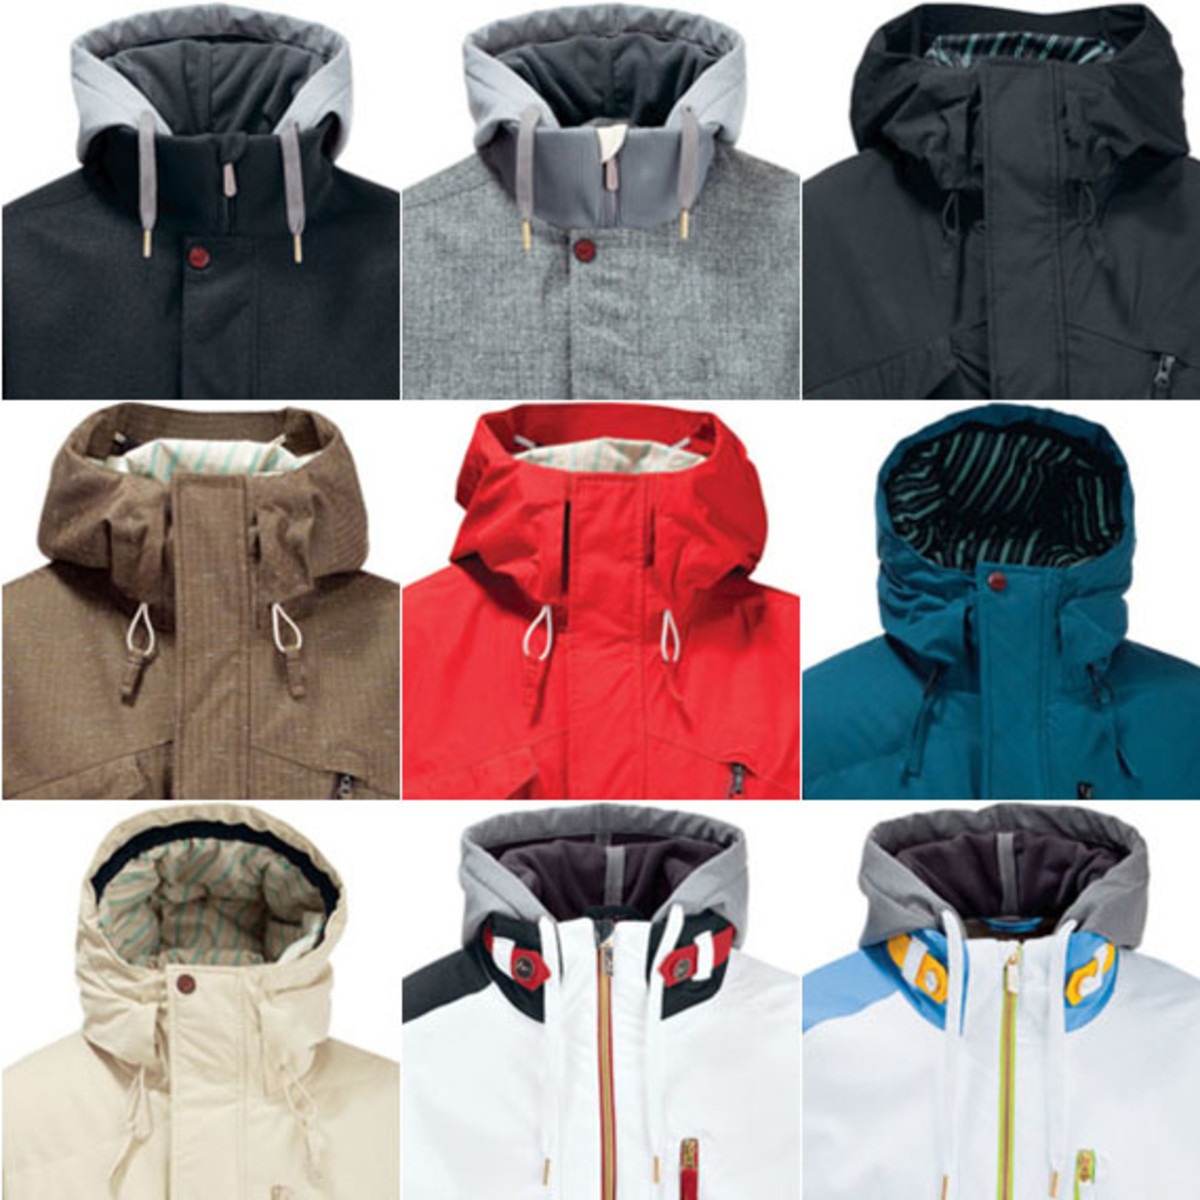 Nike Snowboarding – Snowboarding Apparel Collection - Freshness Mag 69c6f8944